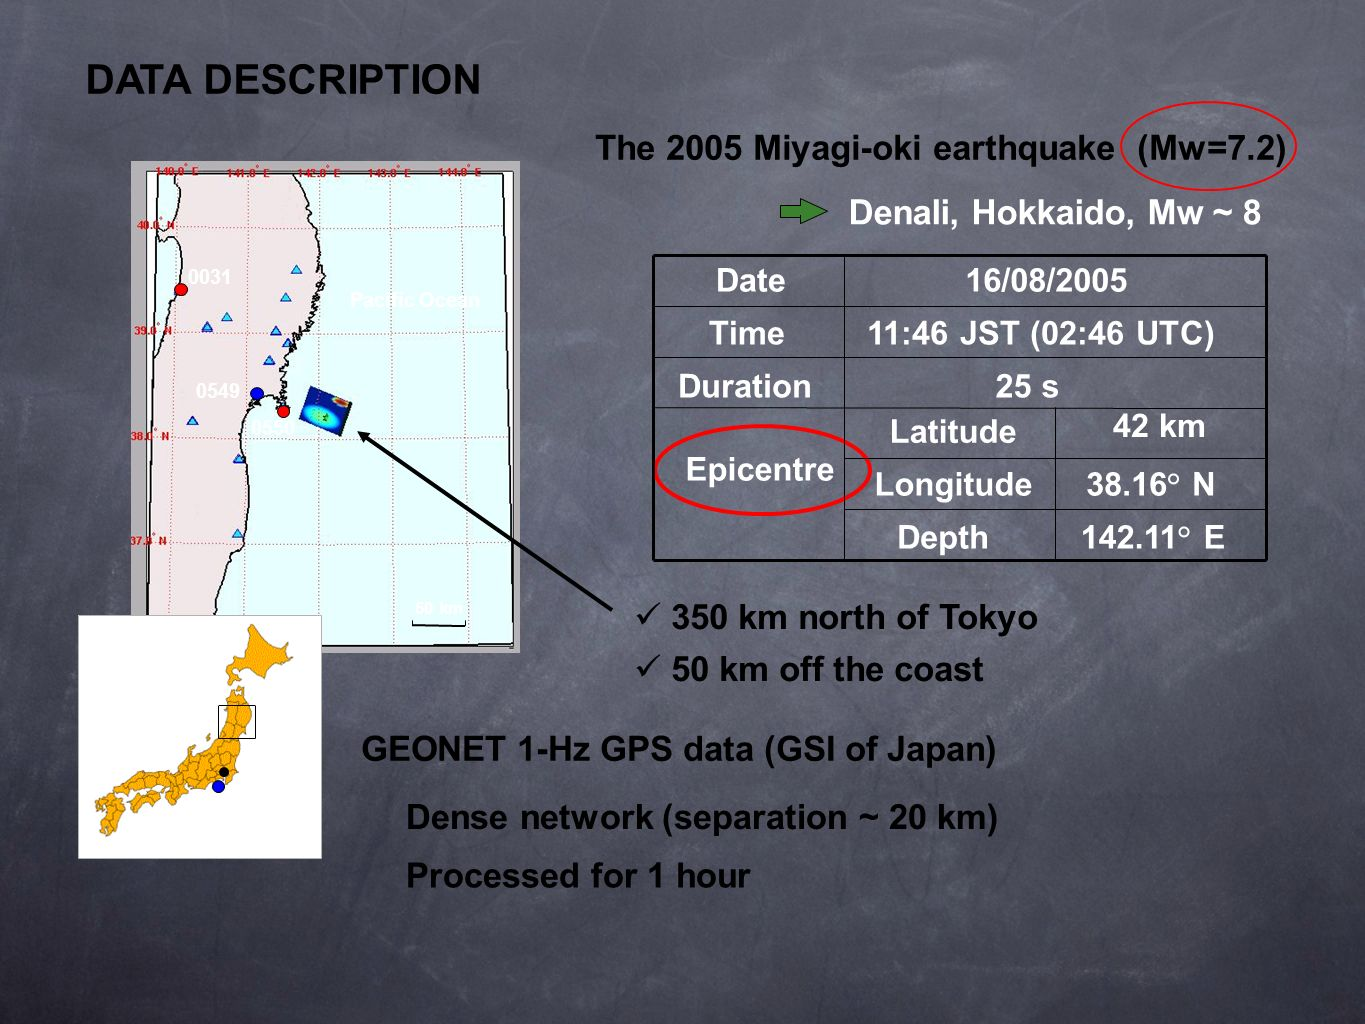 DATA DESCRIPTION The 2005 Miyagi-oki earthquake (Mw=7.2)